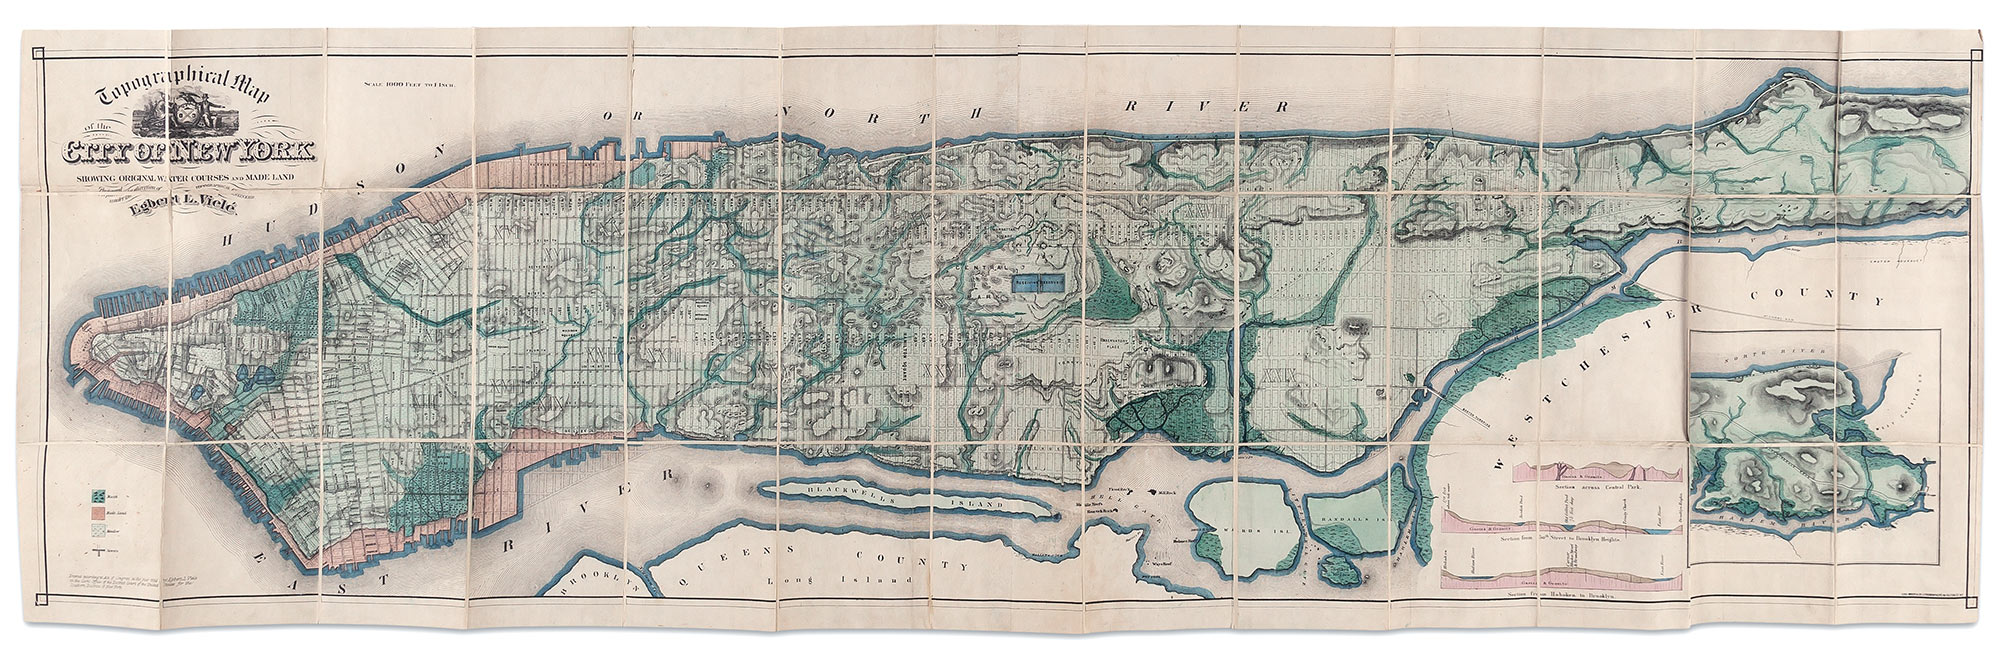 Lot image - [NEW YORK]  VIELE, EGBERT. The Topography and Hydrology of New York.